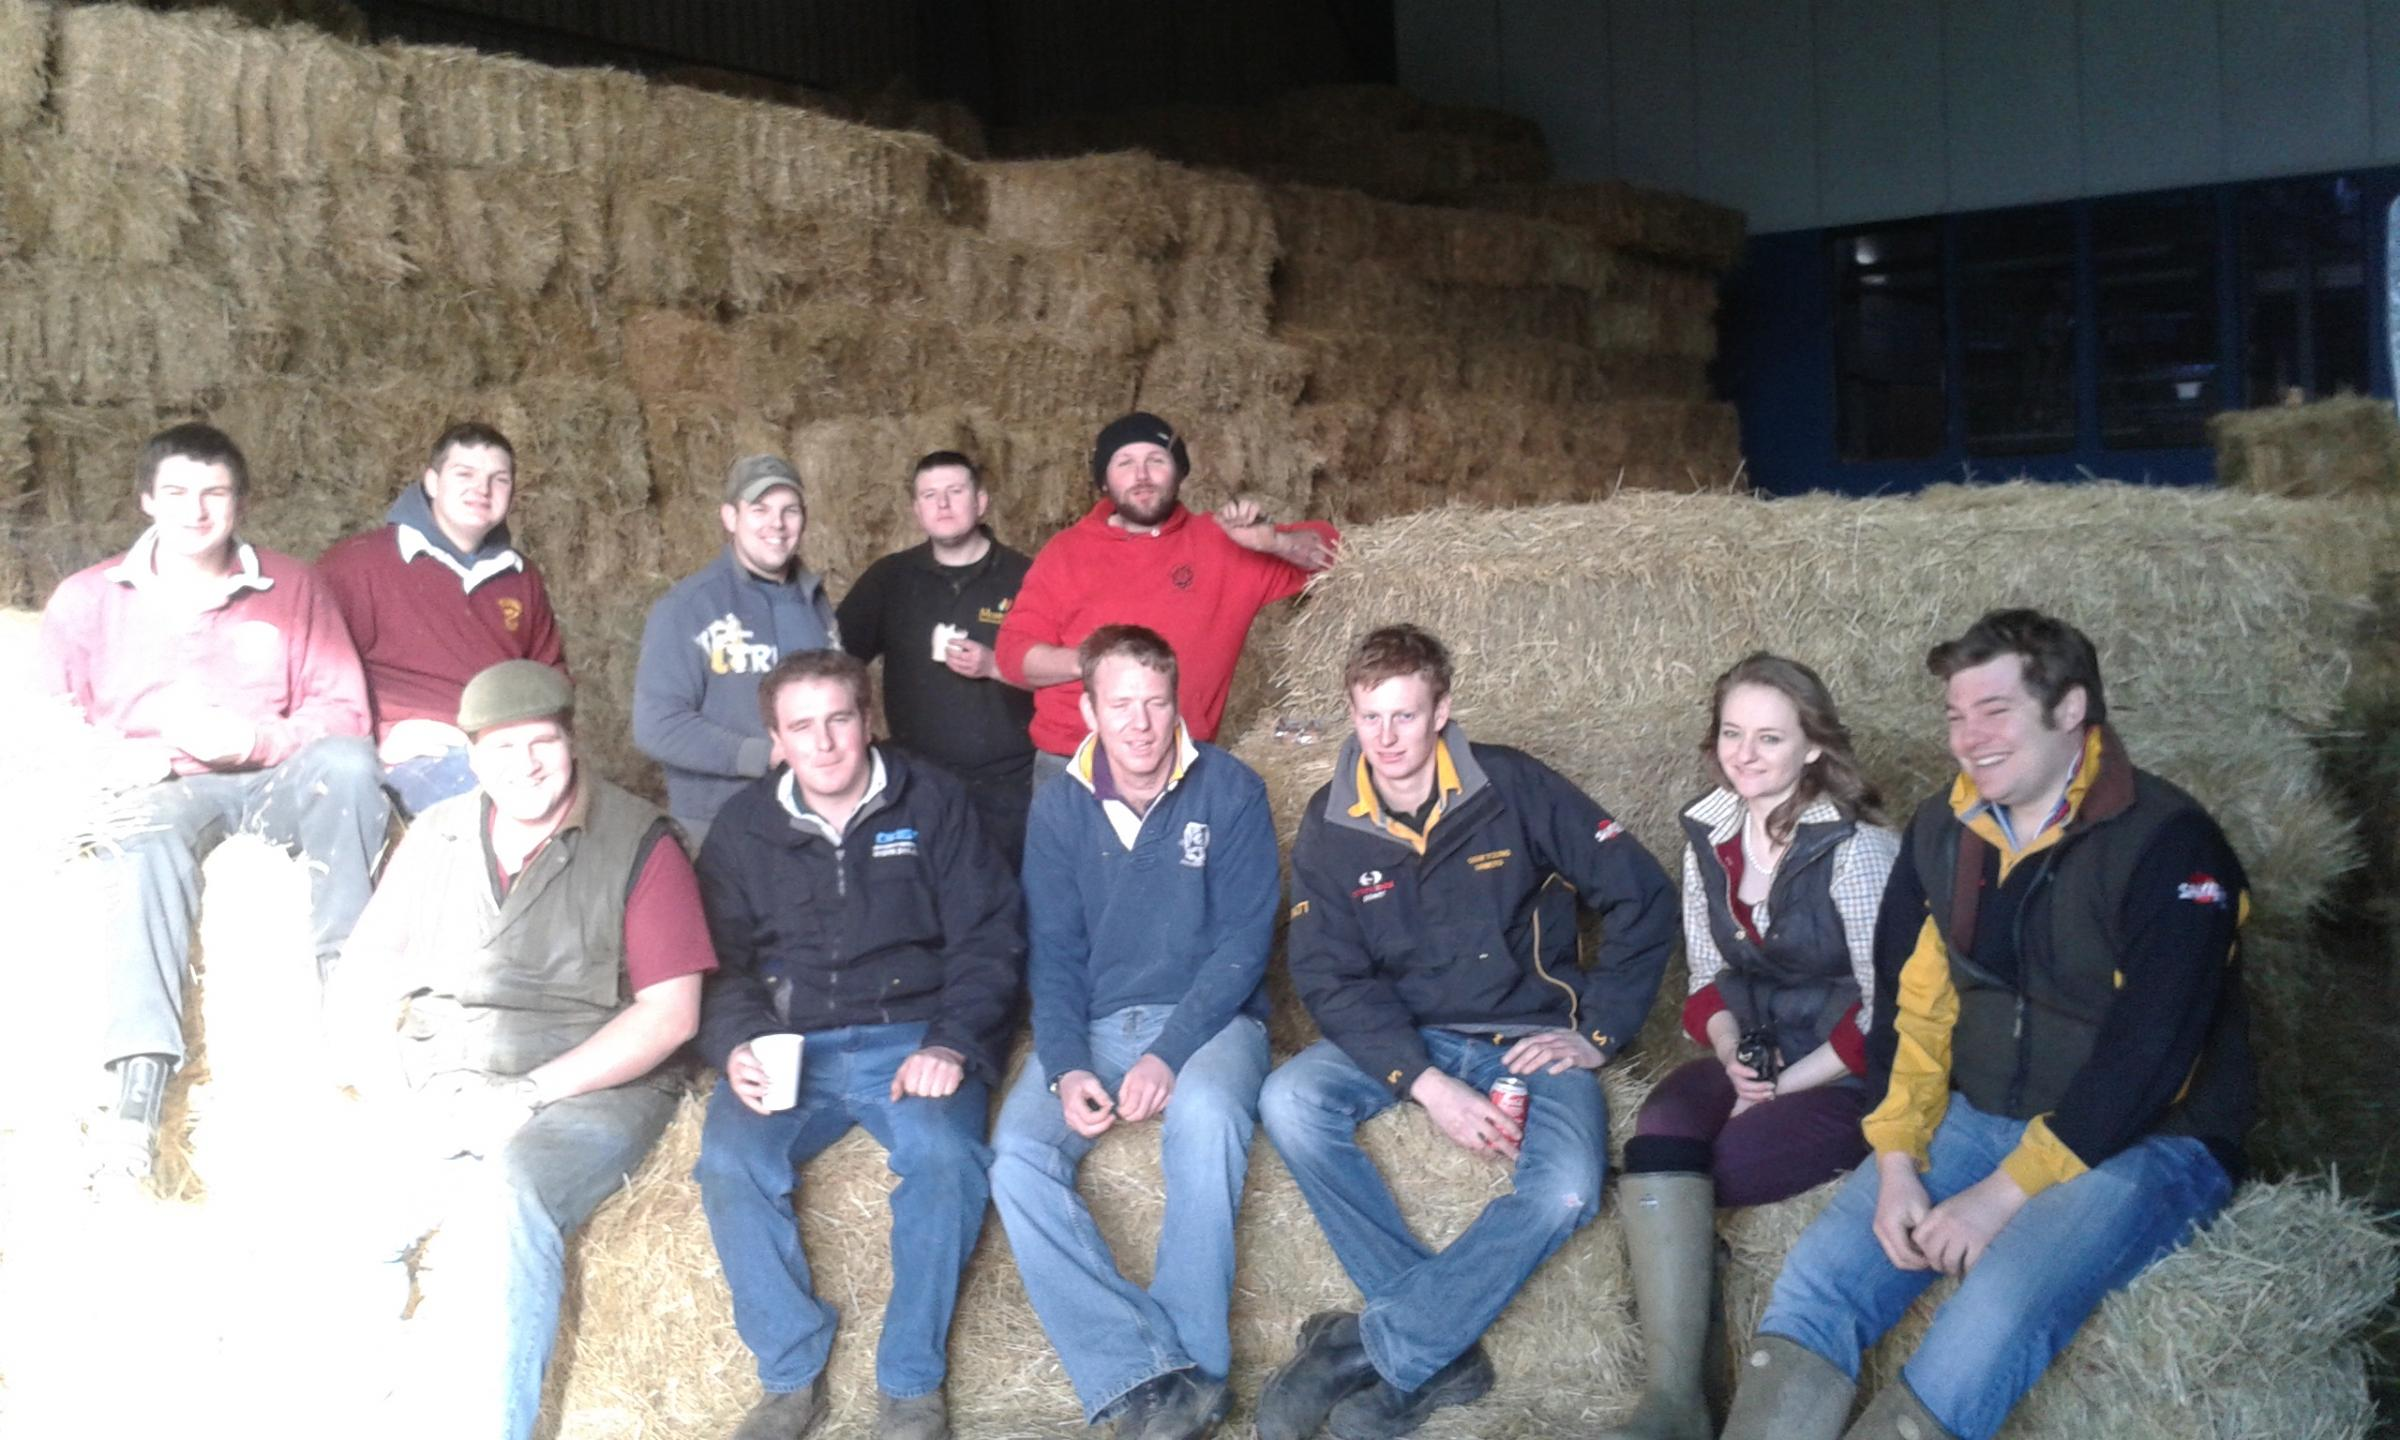 Members of Southminster Young Farmers Cl